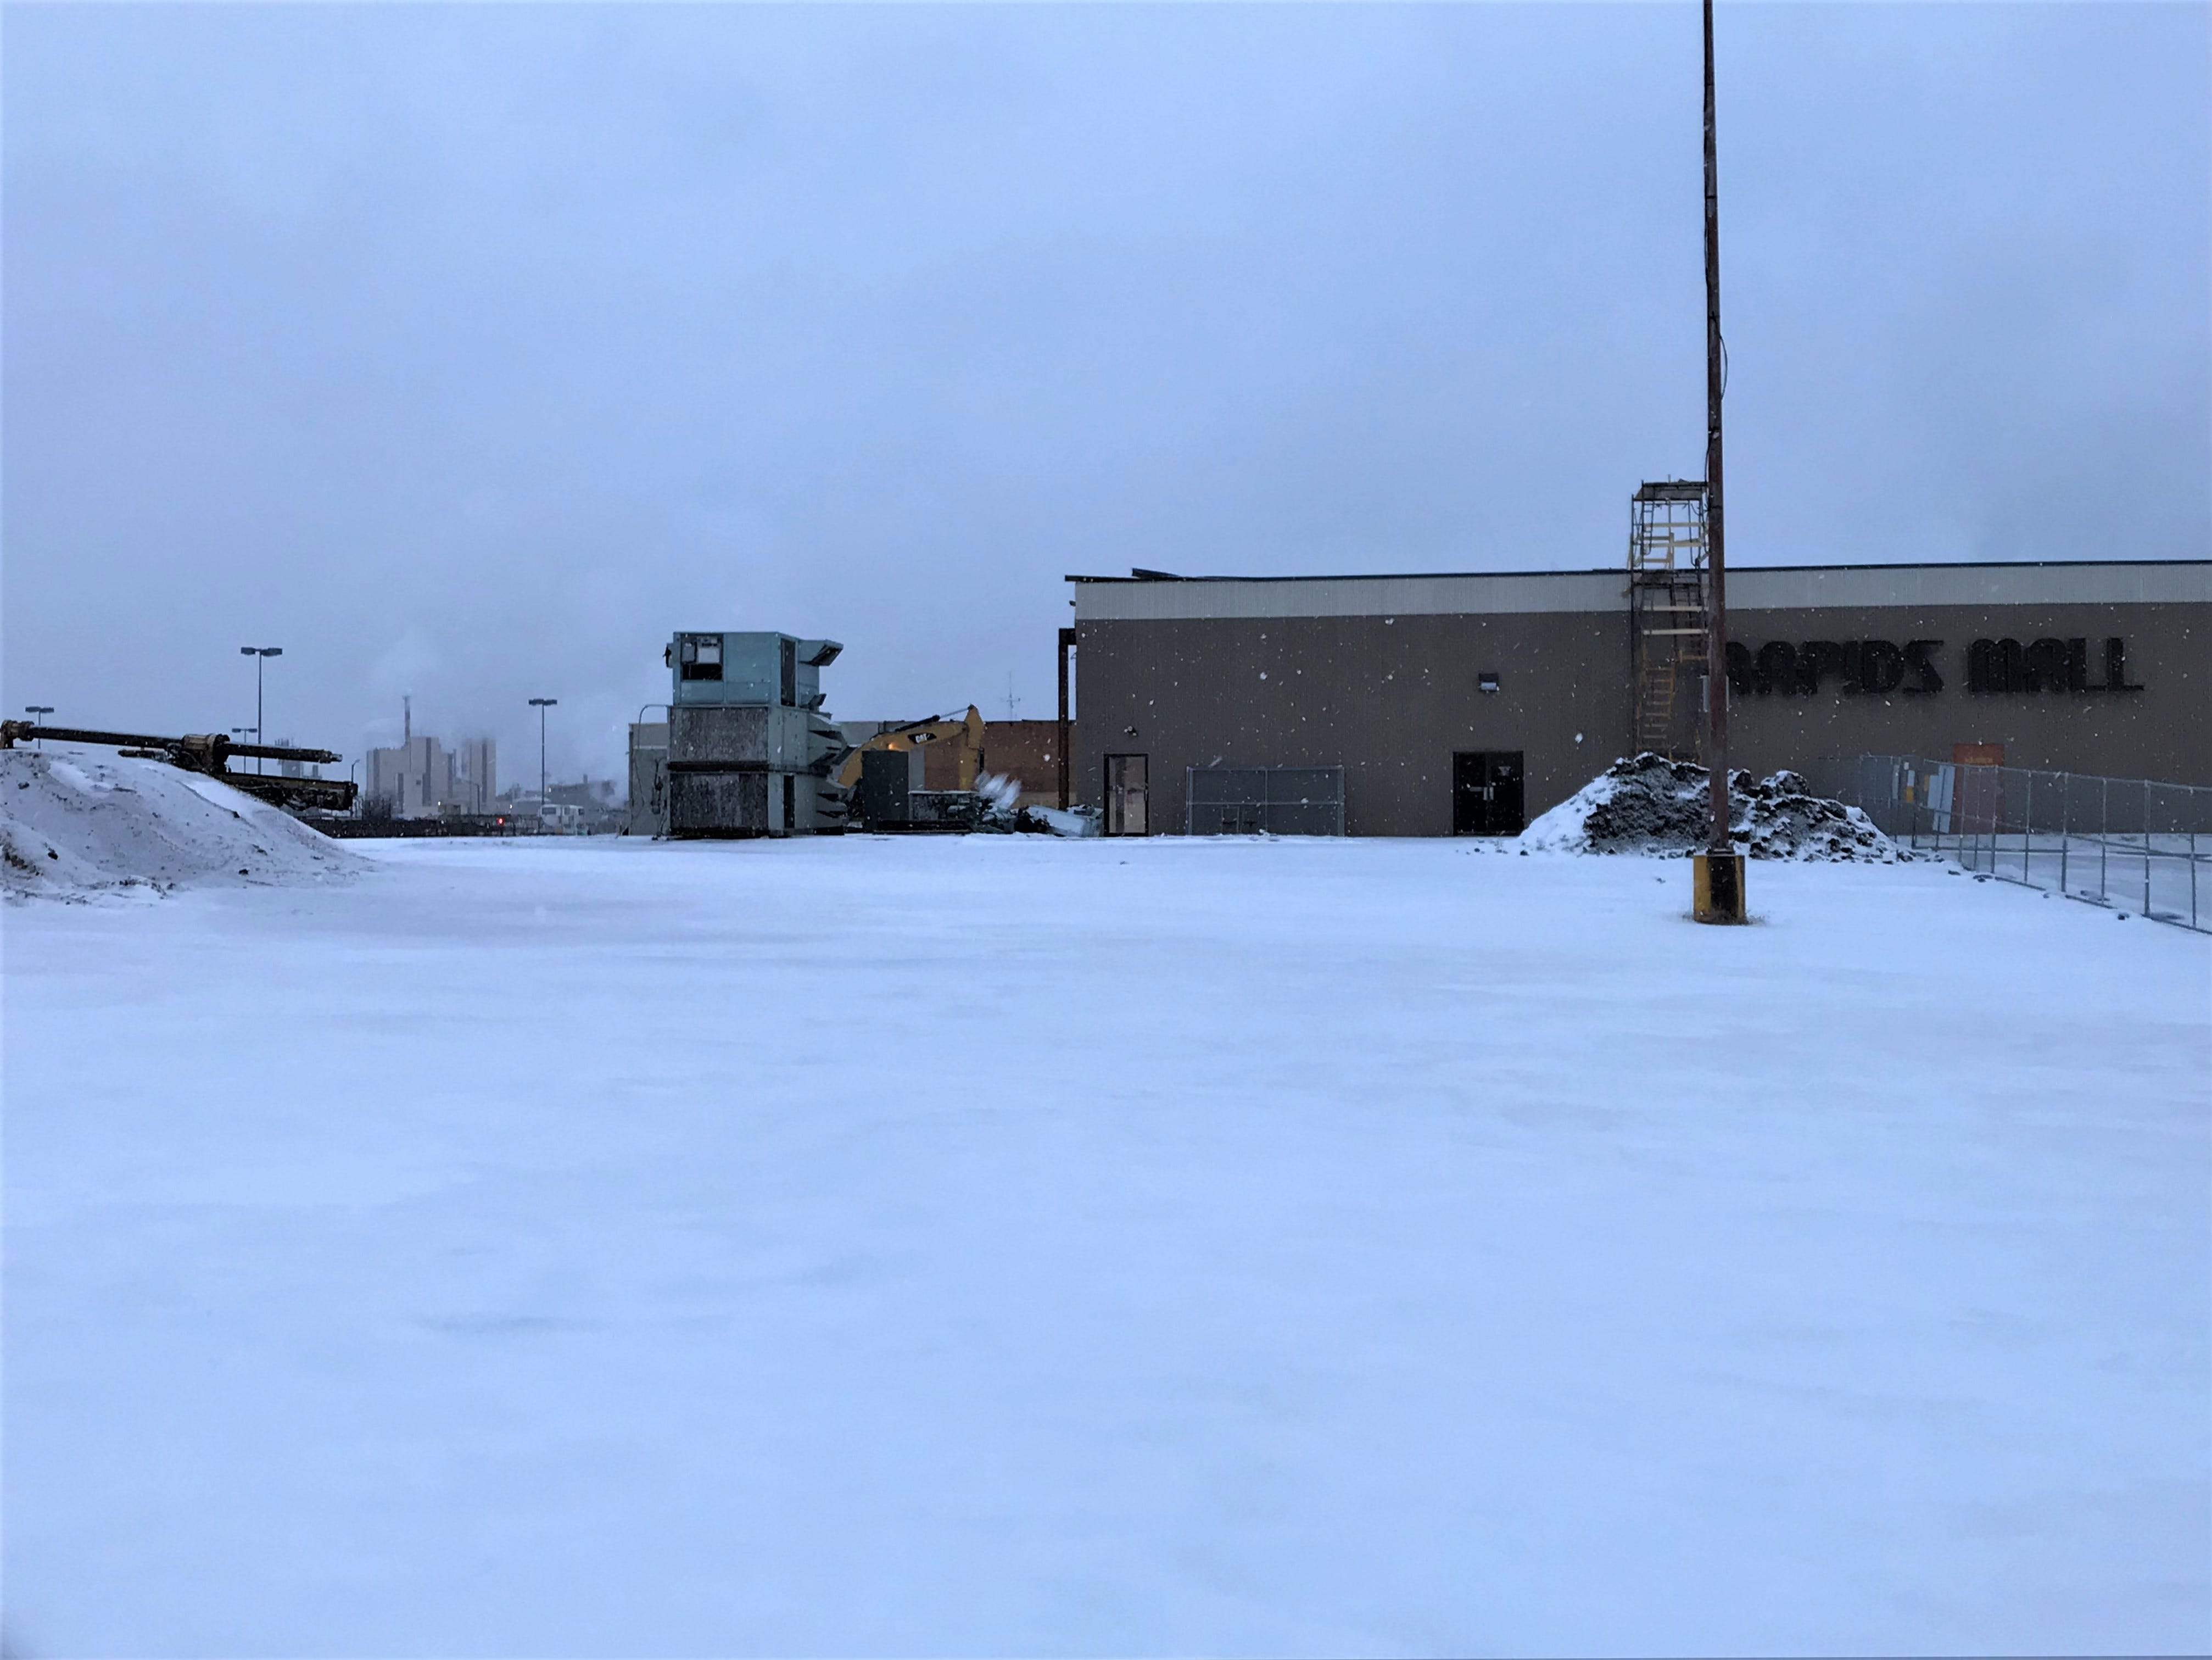 The Younkers space at the former Rapids Mall site has been torn down. The space will be part of the new South Wood County YMCA and Boys & Girls Club in Wisconsin Rapids. Photo taken Jan. 2, 2019.